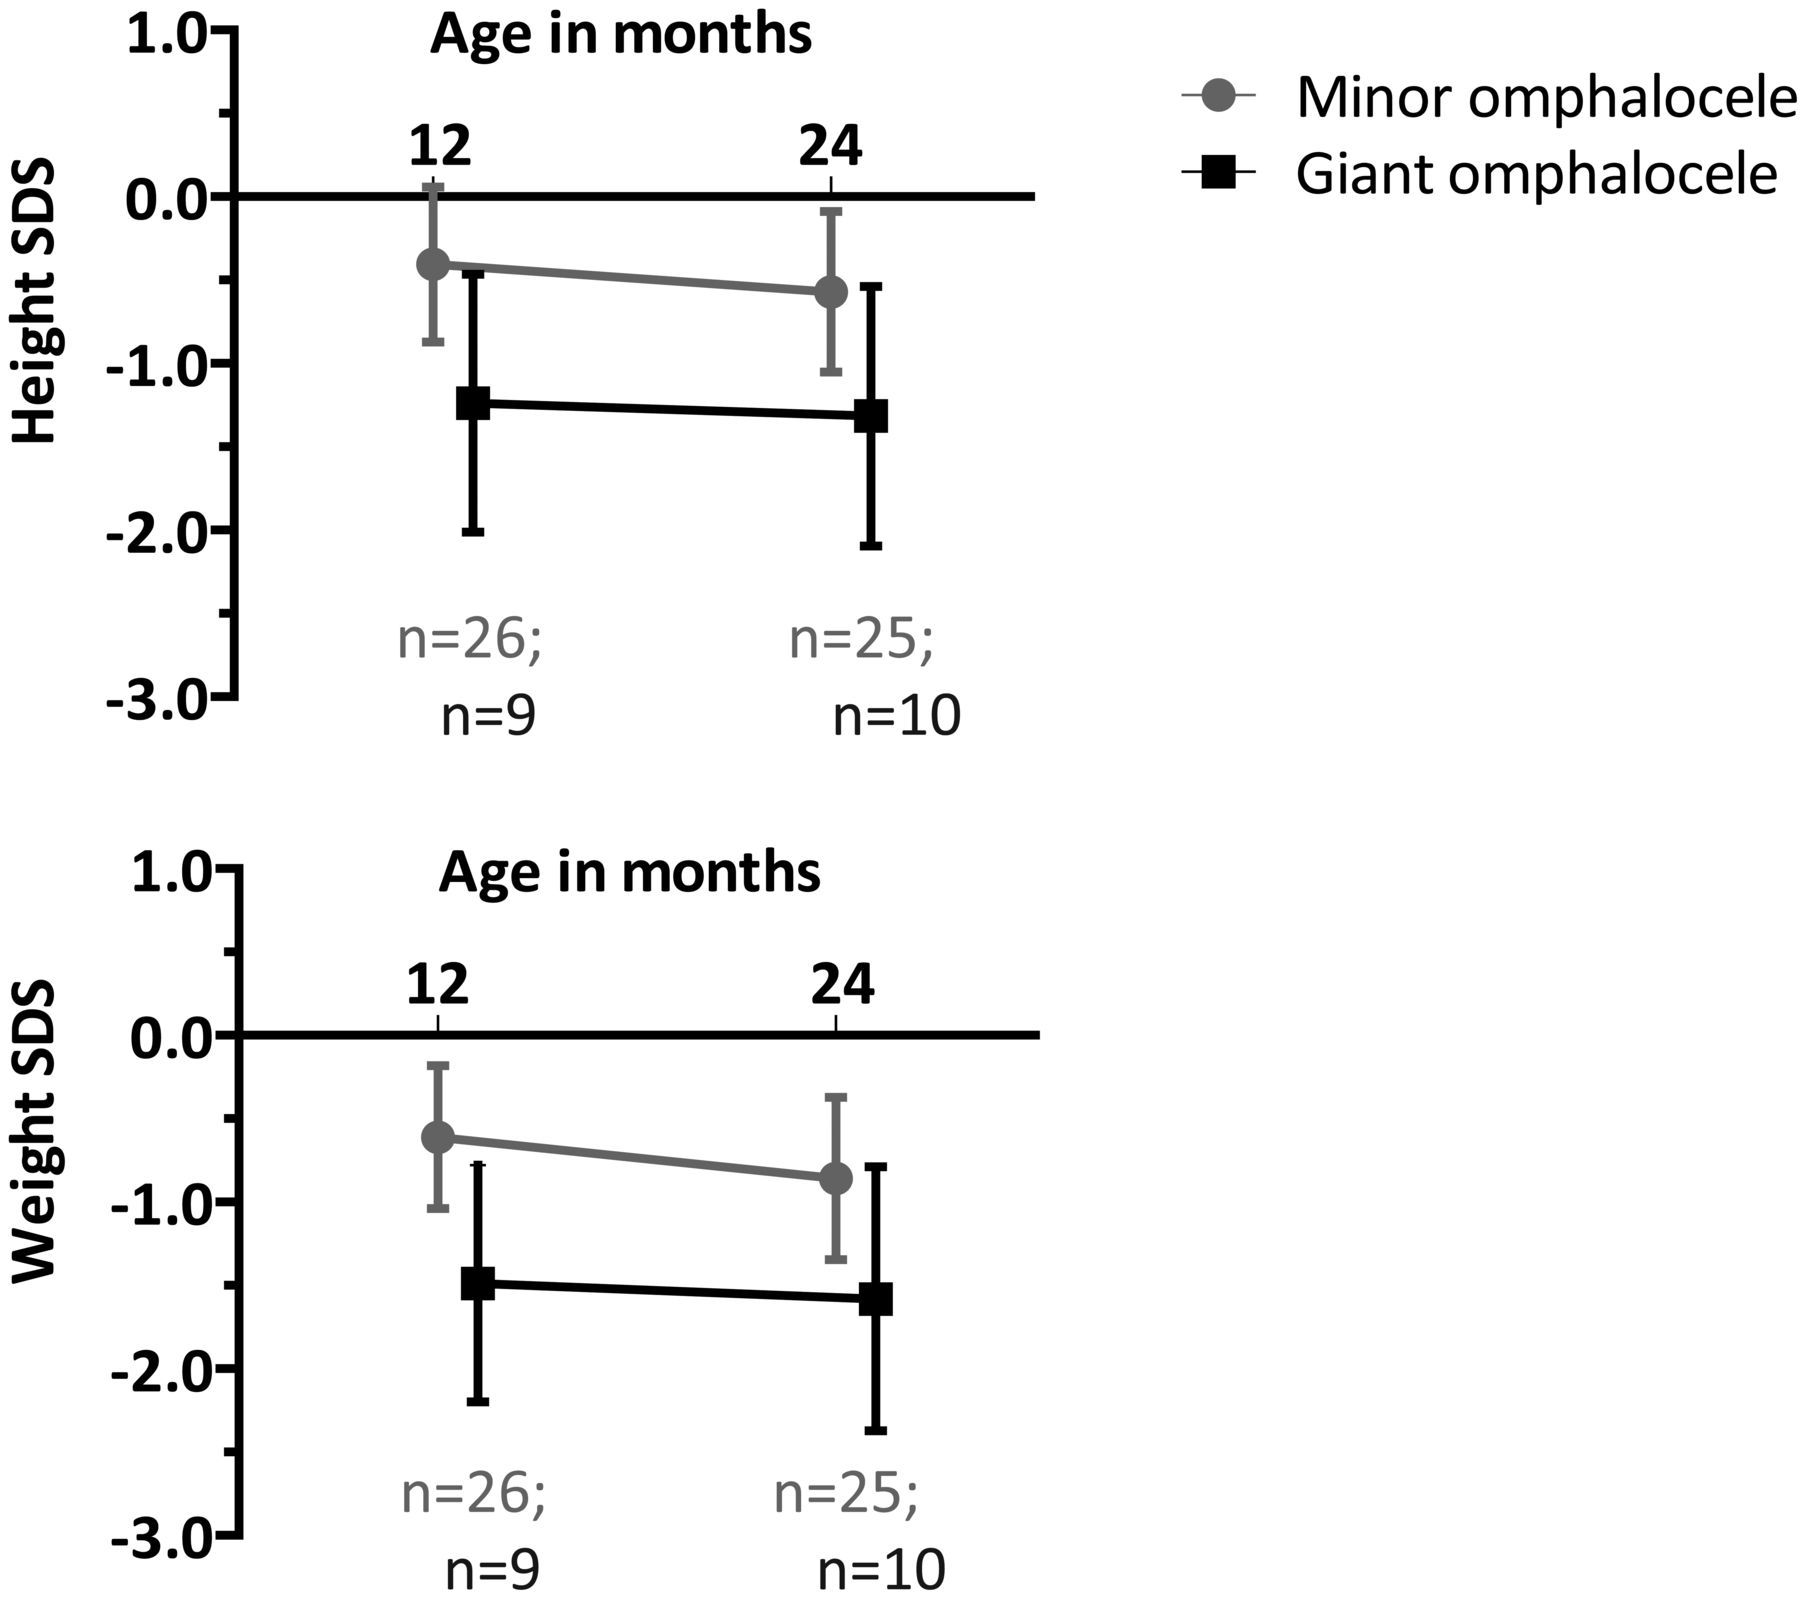 Omphalocele From Diagnosis To Growth And Development At 2 Years Of Series Circuit Definition For Kids Download Figure